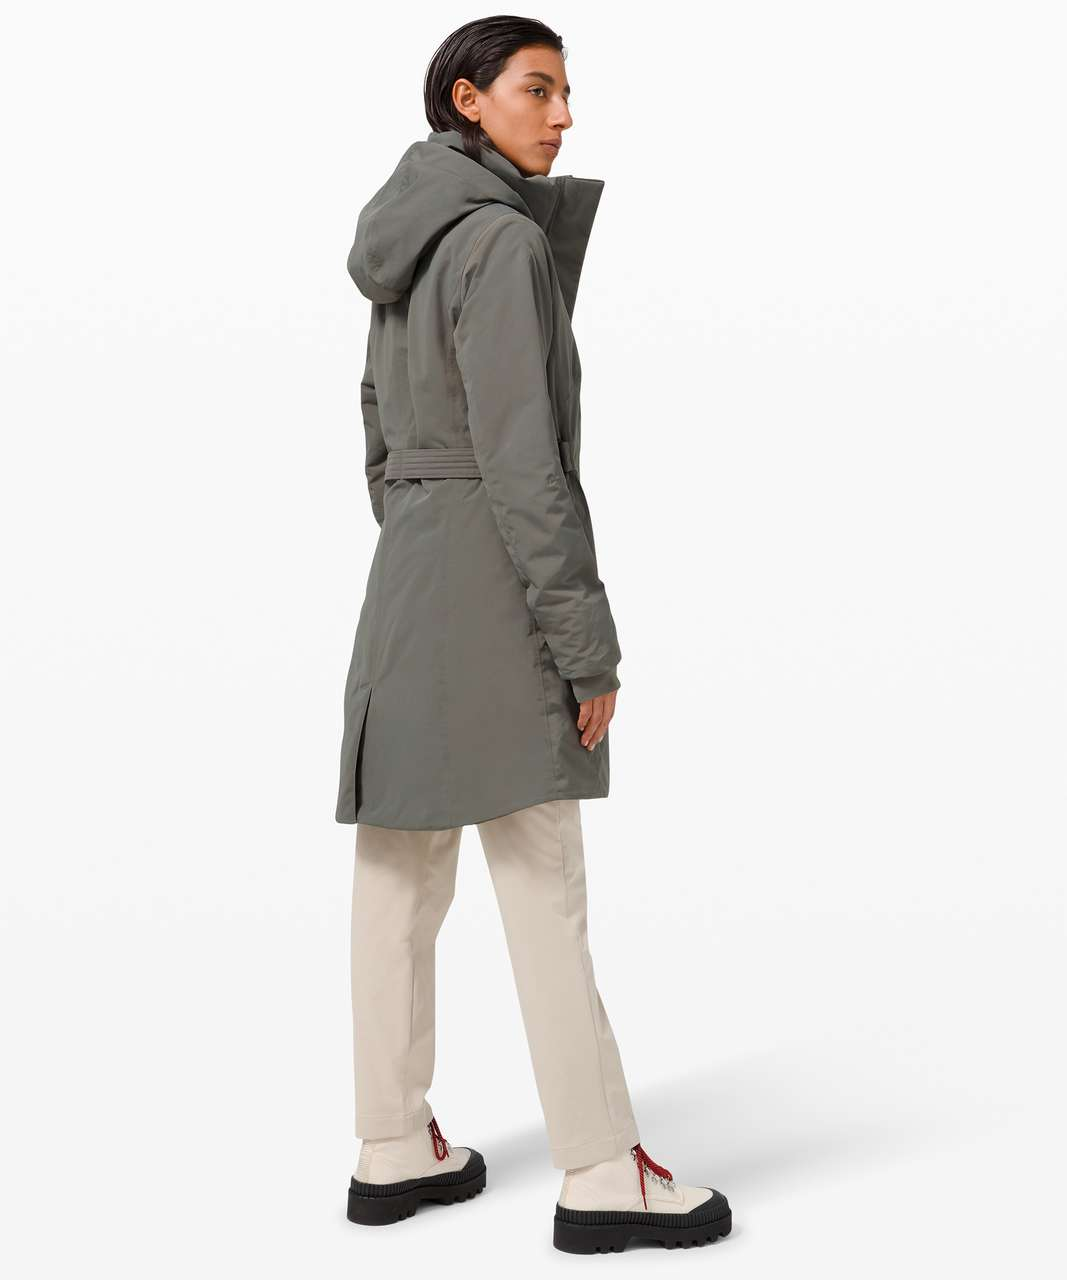 Lululemon Apres It All Jacket - Grey Sage